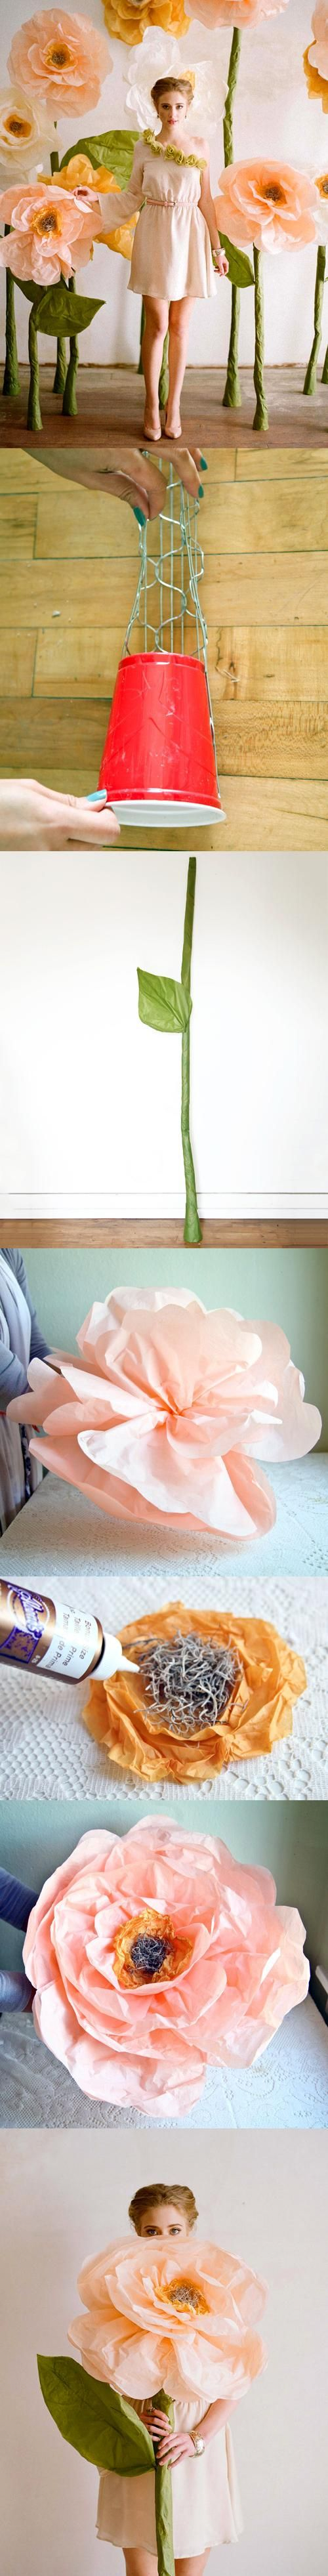 Giant Tissue Flower | Tutorial (some steps)